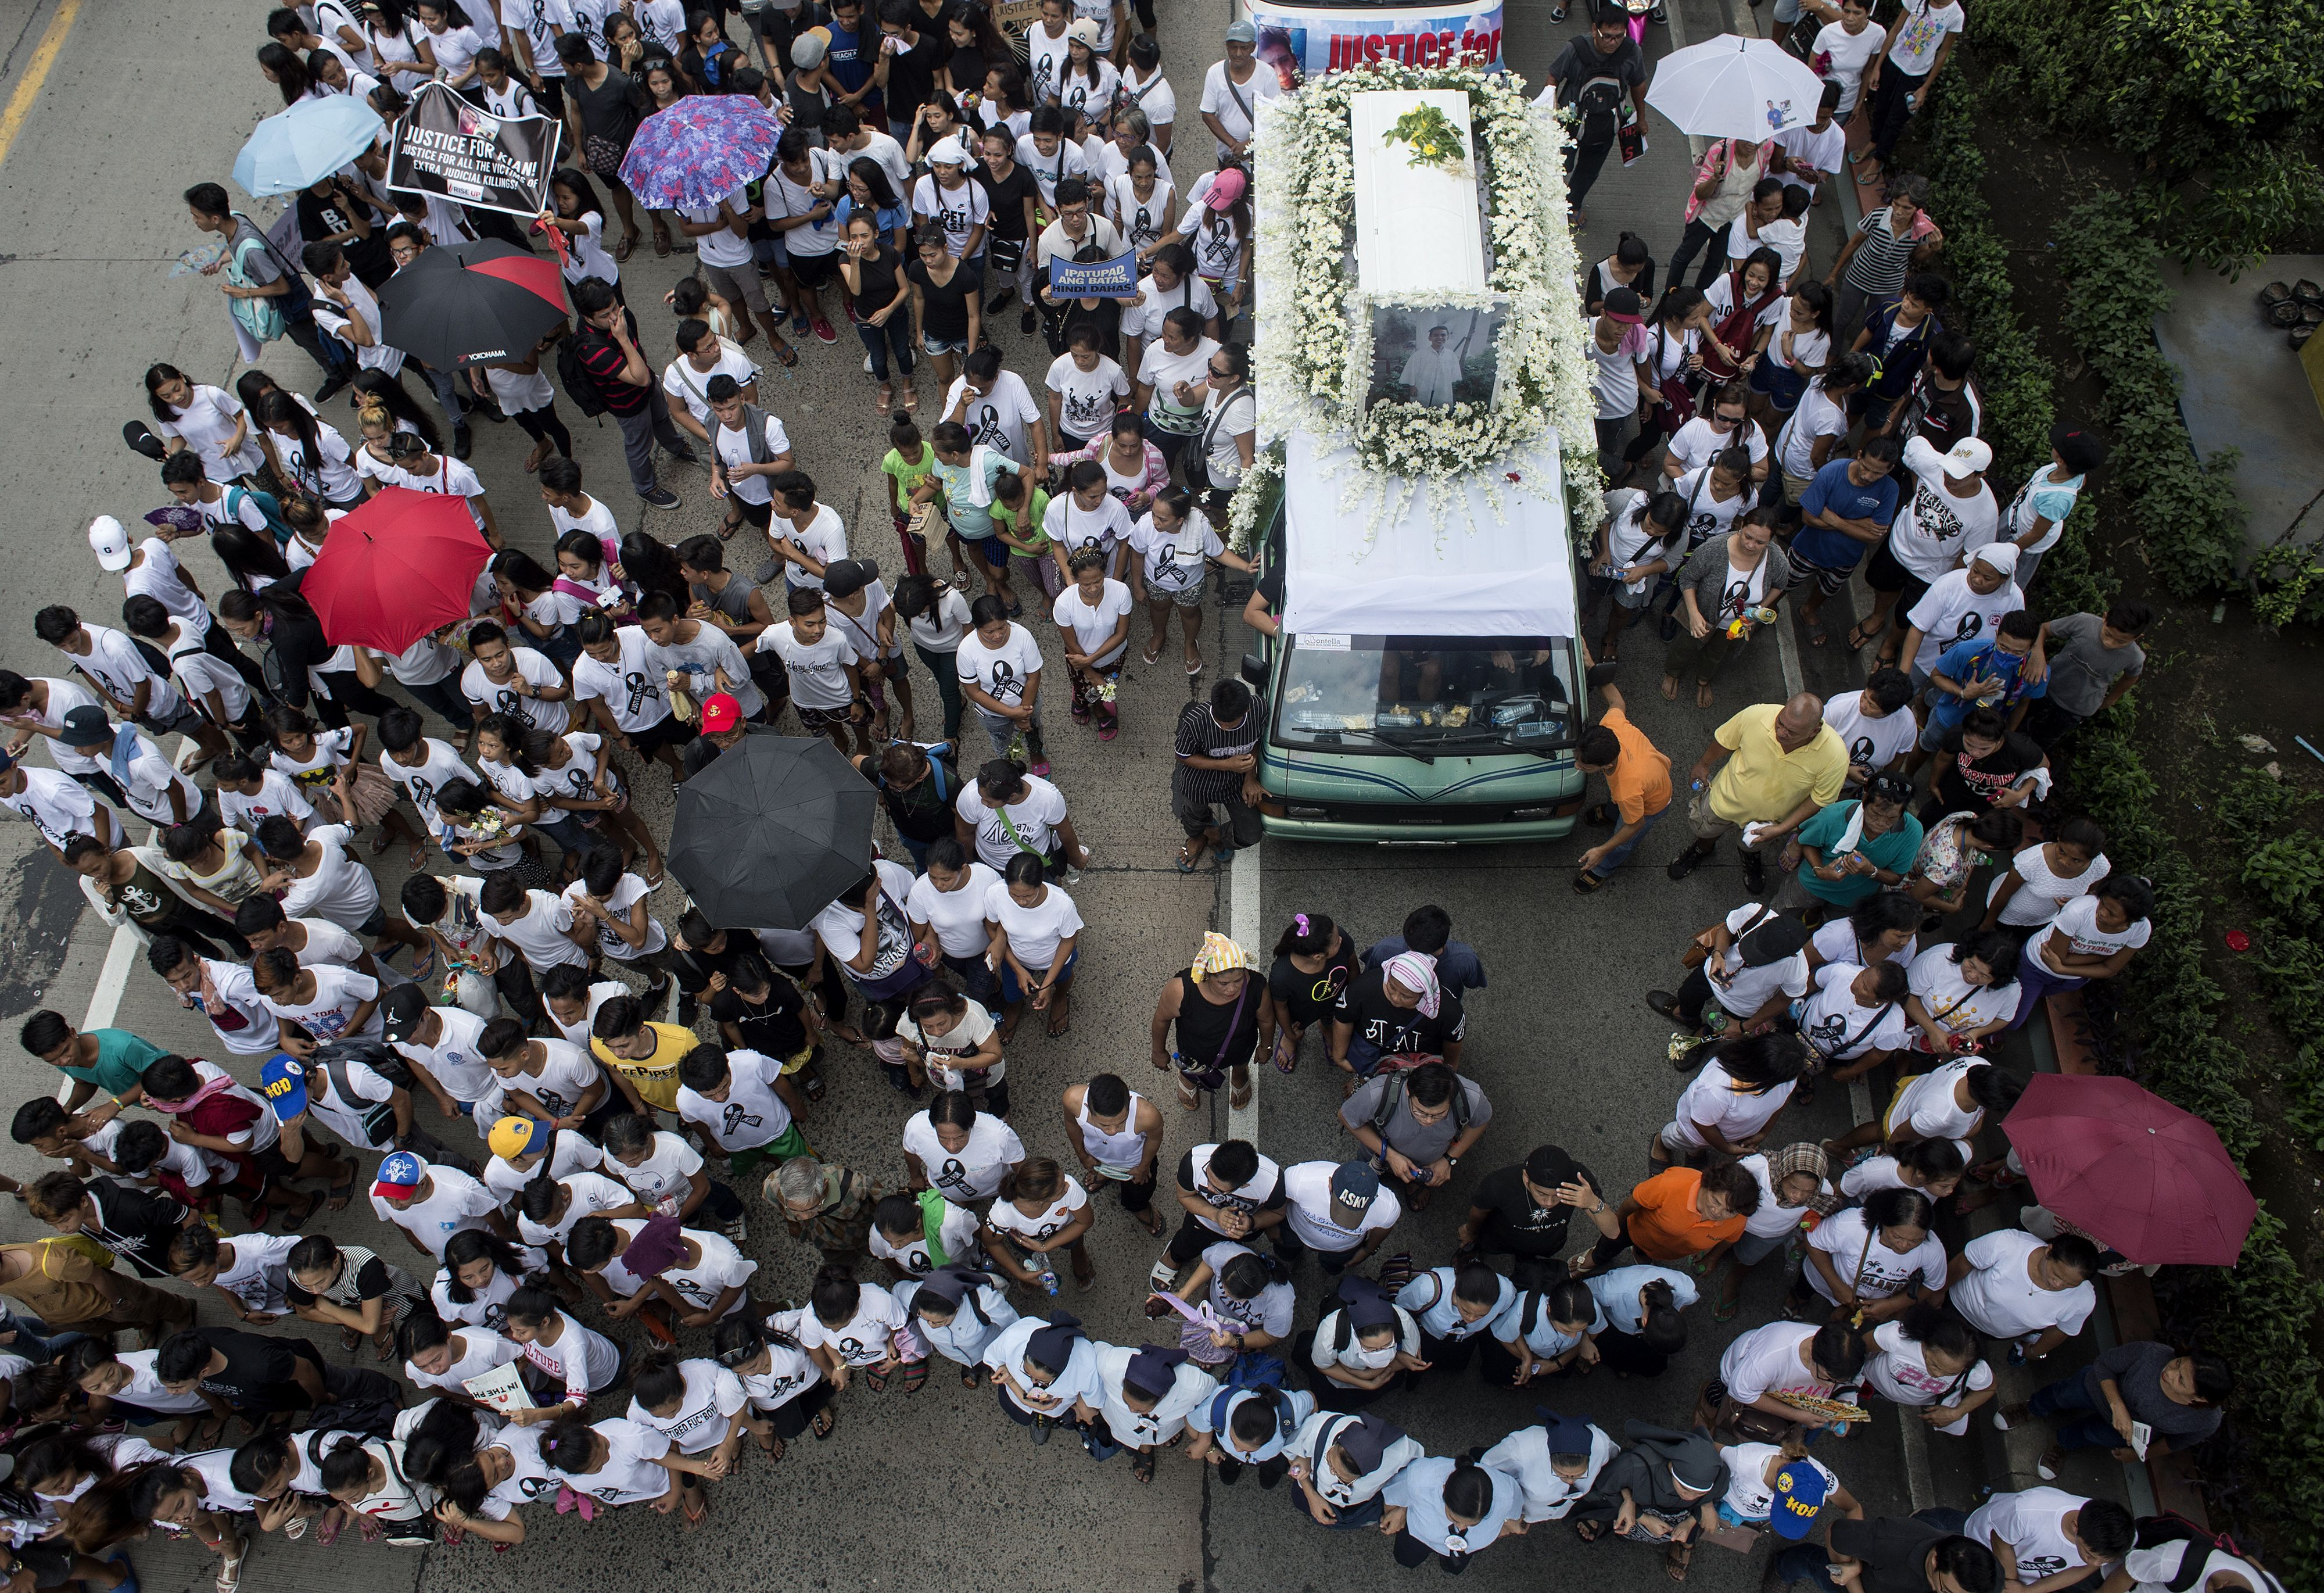 Relatives and supporters of 17-year-old student Kian Loyd Delos Santos, who was allegedly killed by police, participate in his funeral march in Manila on Aug. 26, 2017.